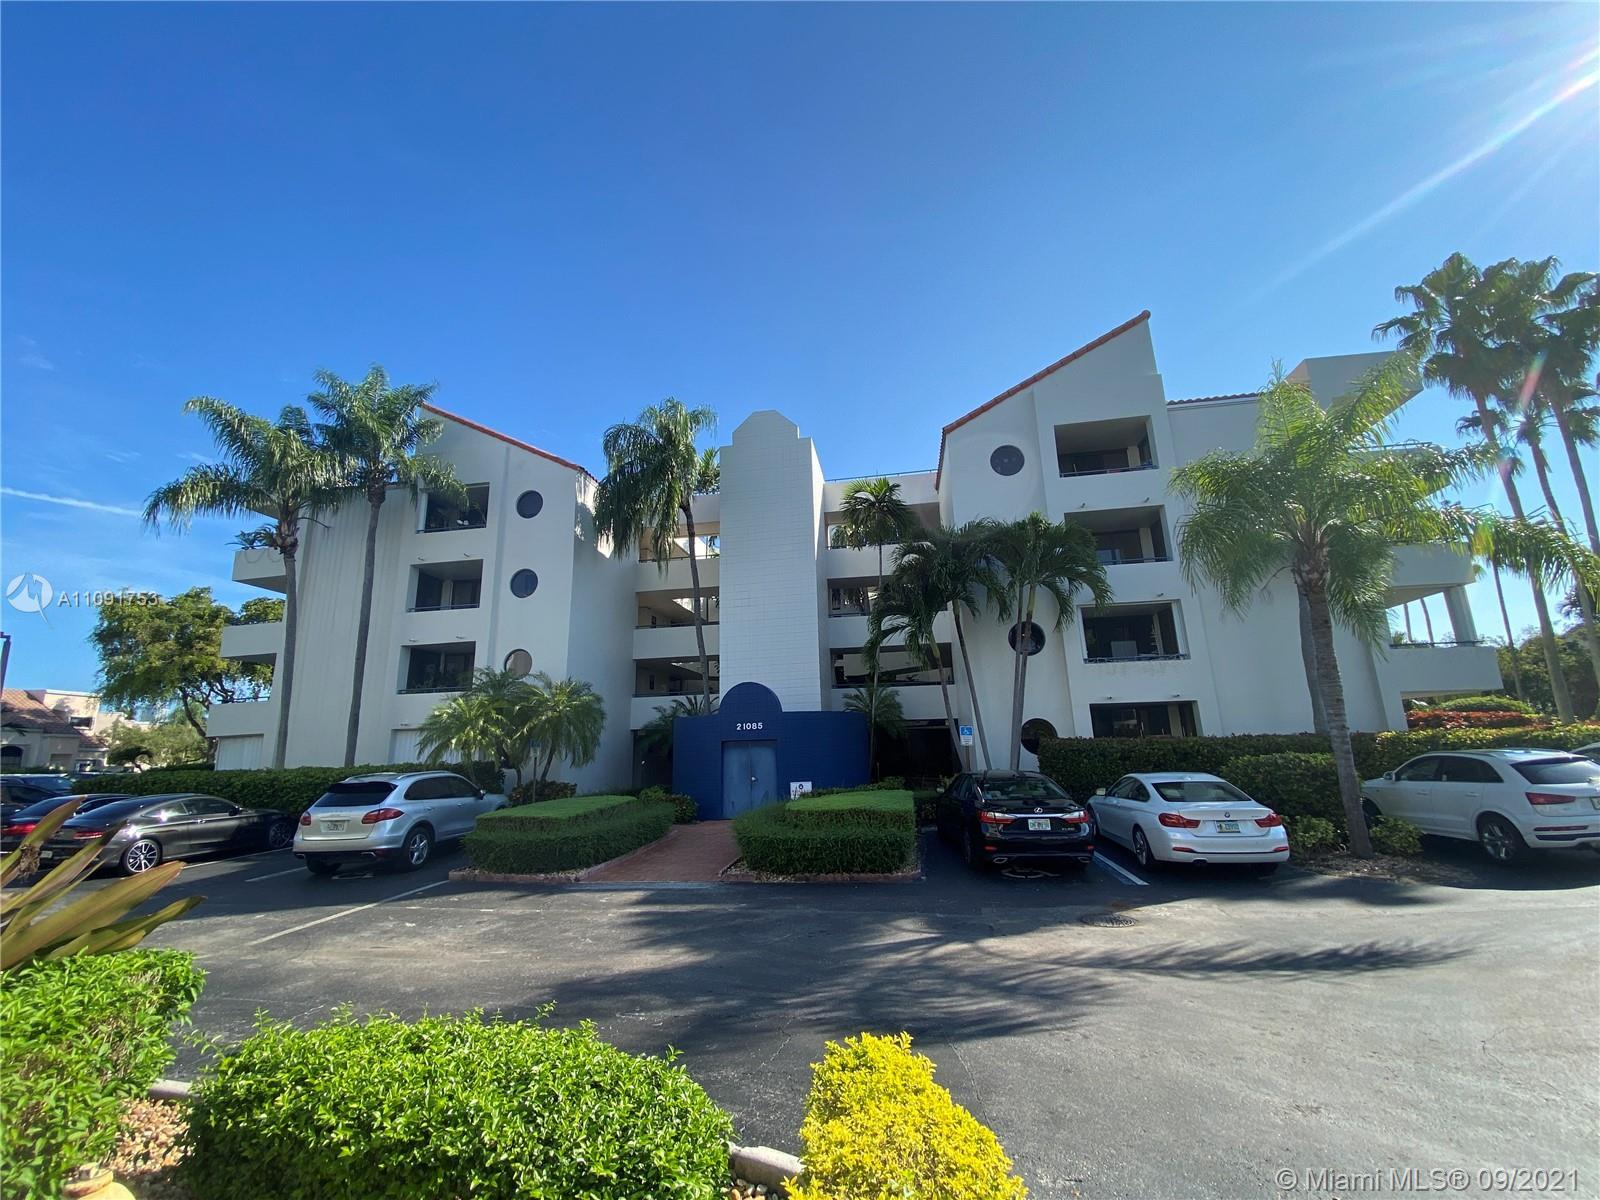 Great spacious 2/2 renovated unit, lots of light and big balcony, washer and dryer in the unit , gua